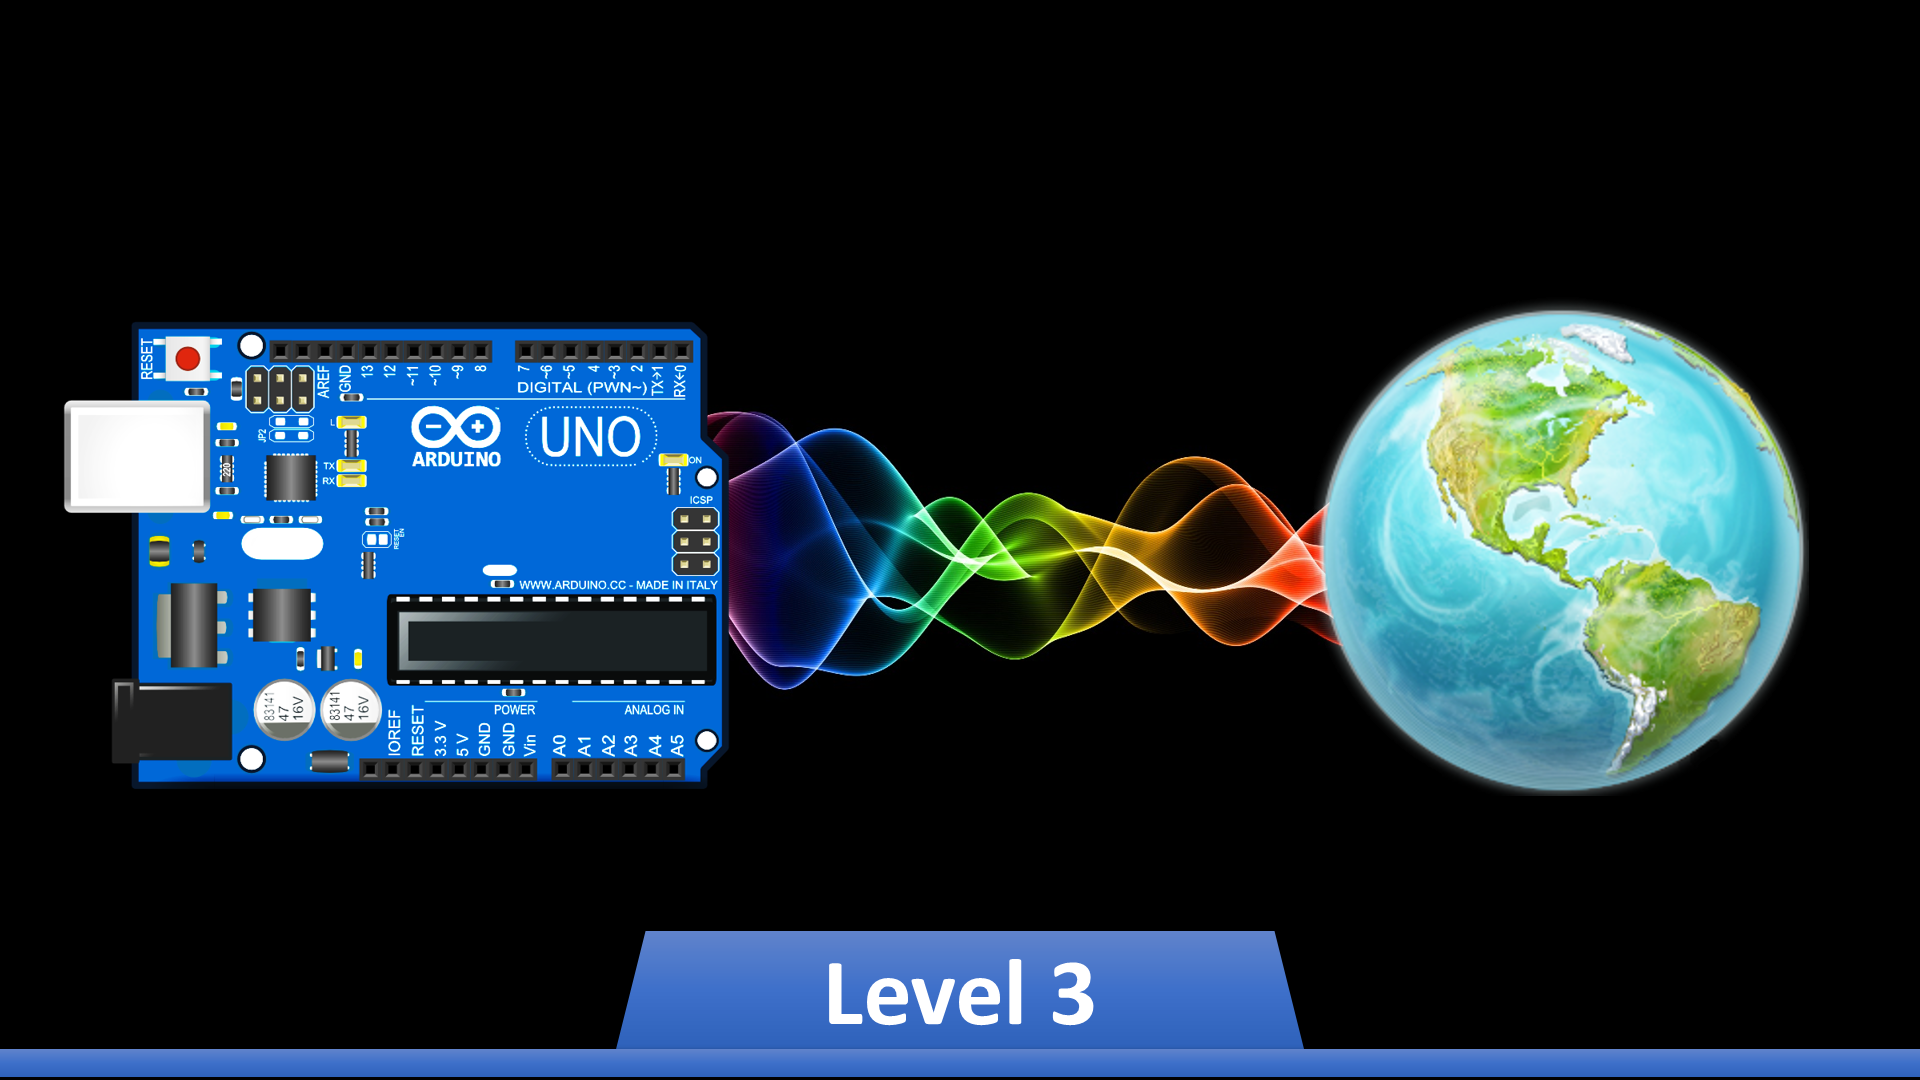 Crazy about Arduino - Level 3 - Building a Web-based Data-Logger